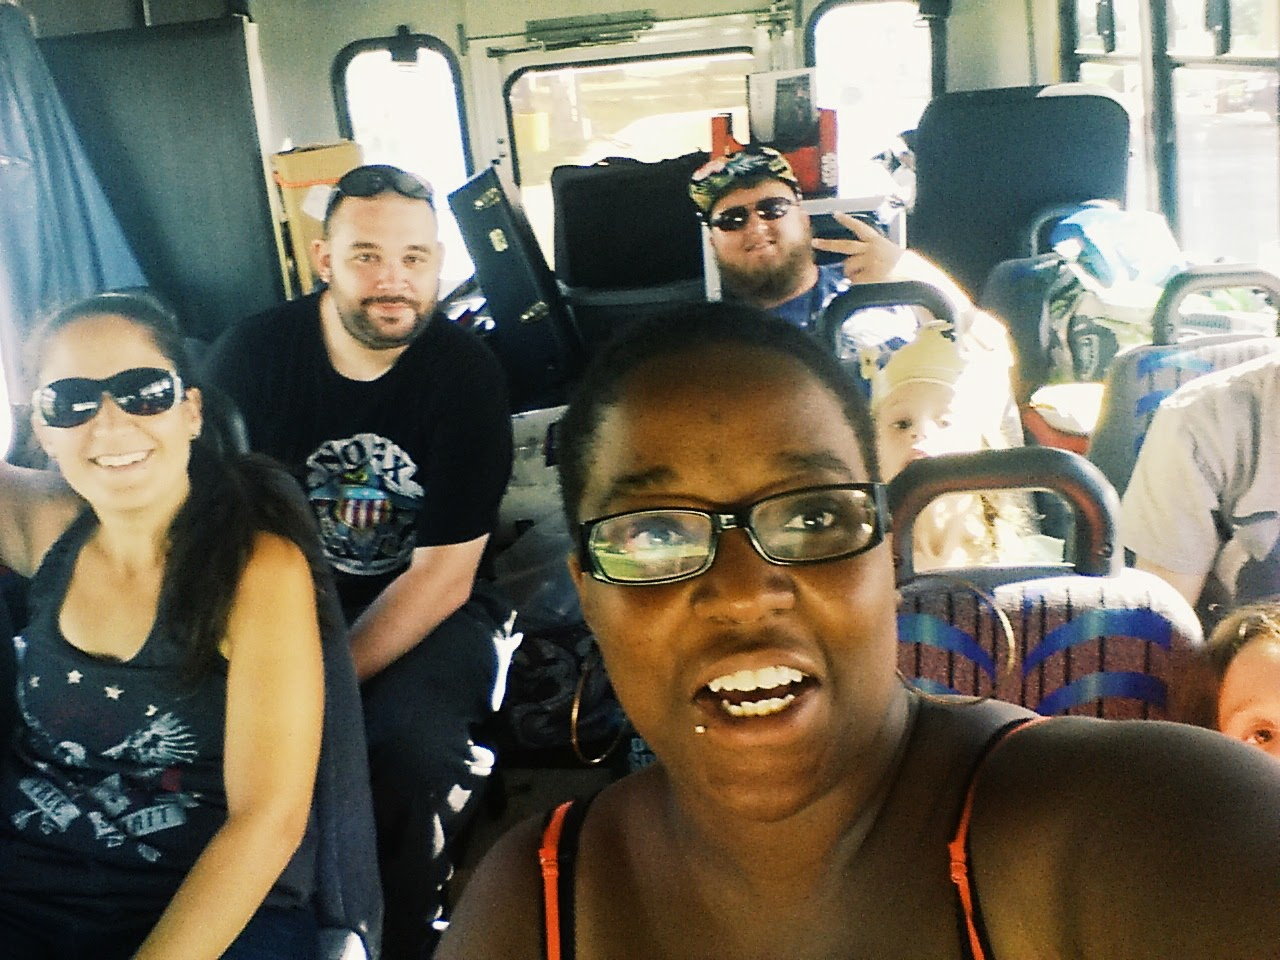 Silly faces on the No Lost Cause tour bus!